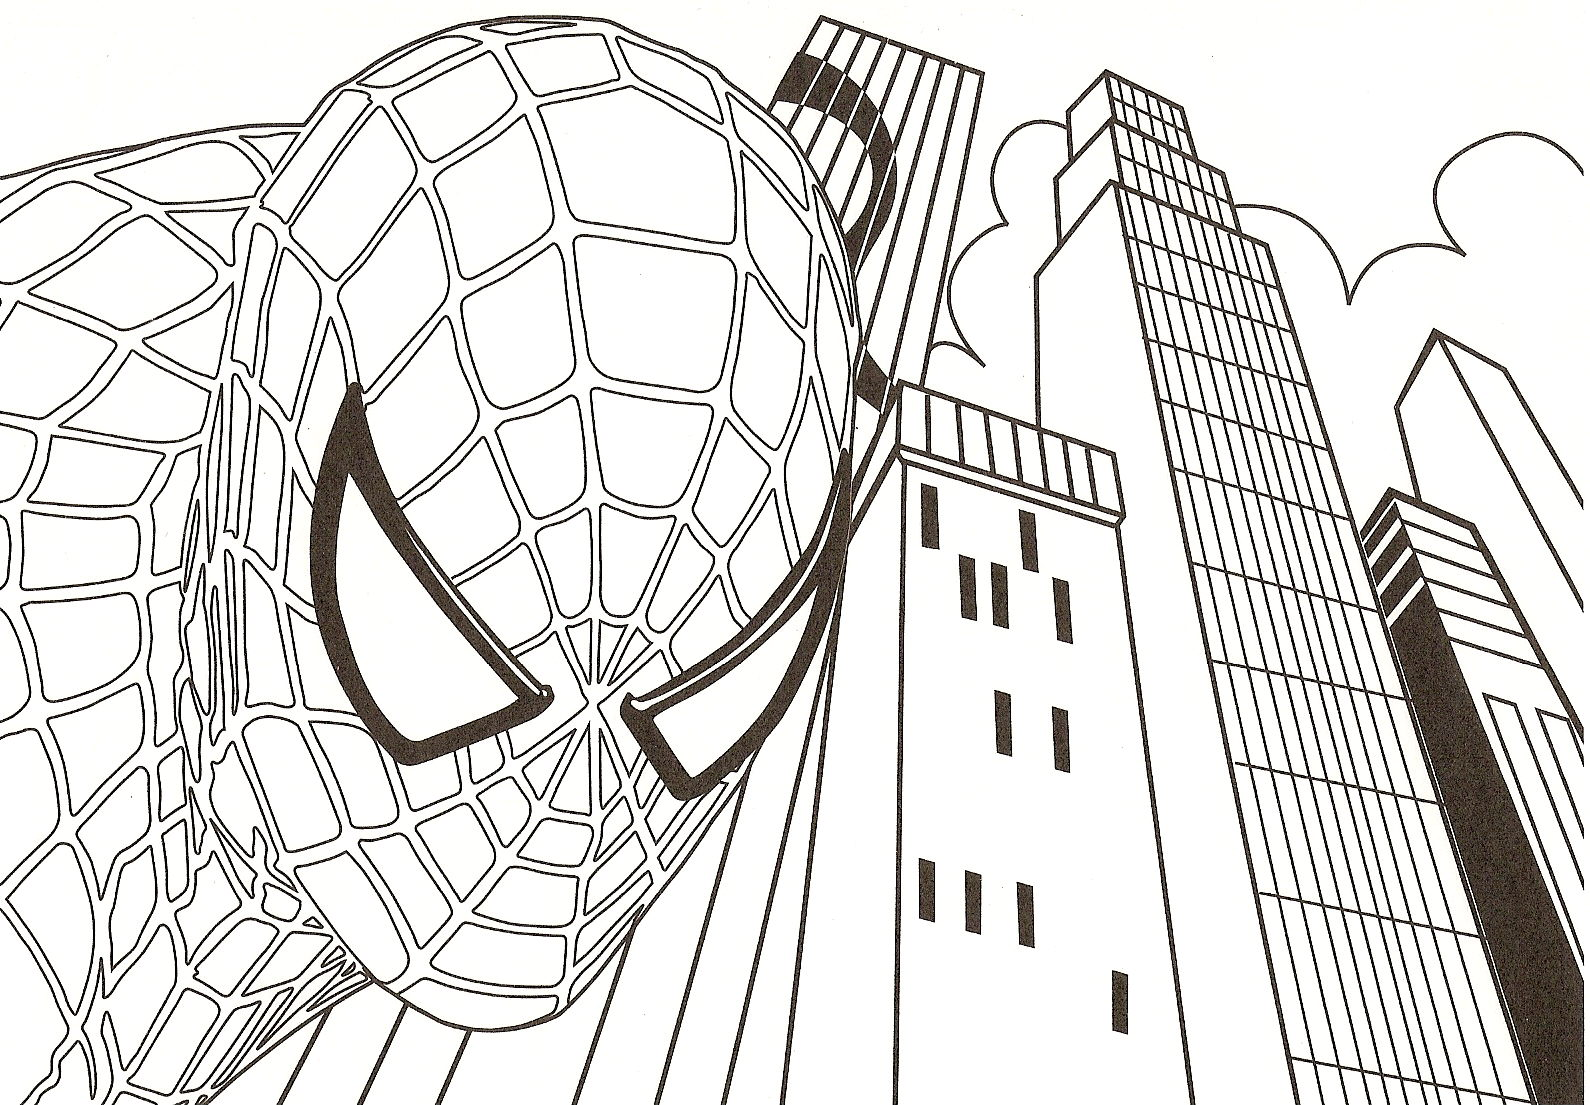 SPIDERMAN COLORING: SPIDERMAN COLOURING BOOK PAGES TO ...